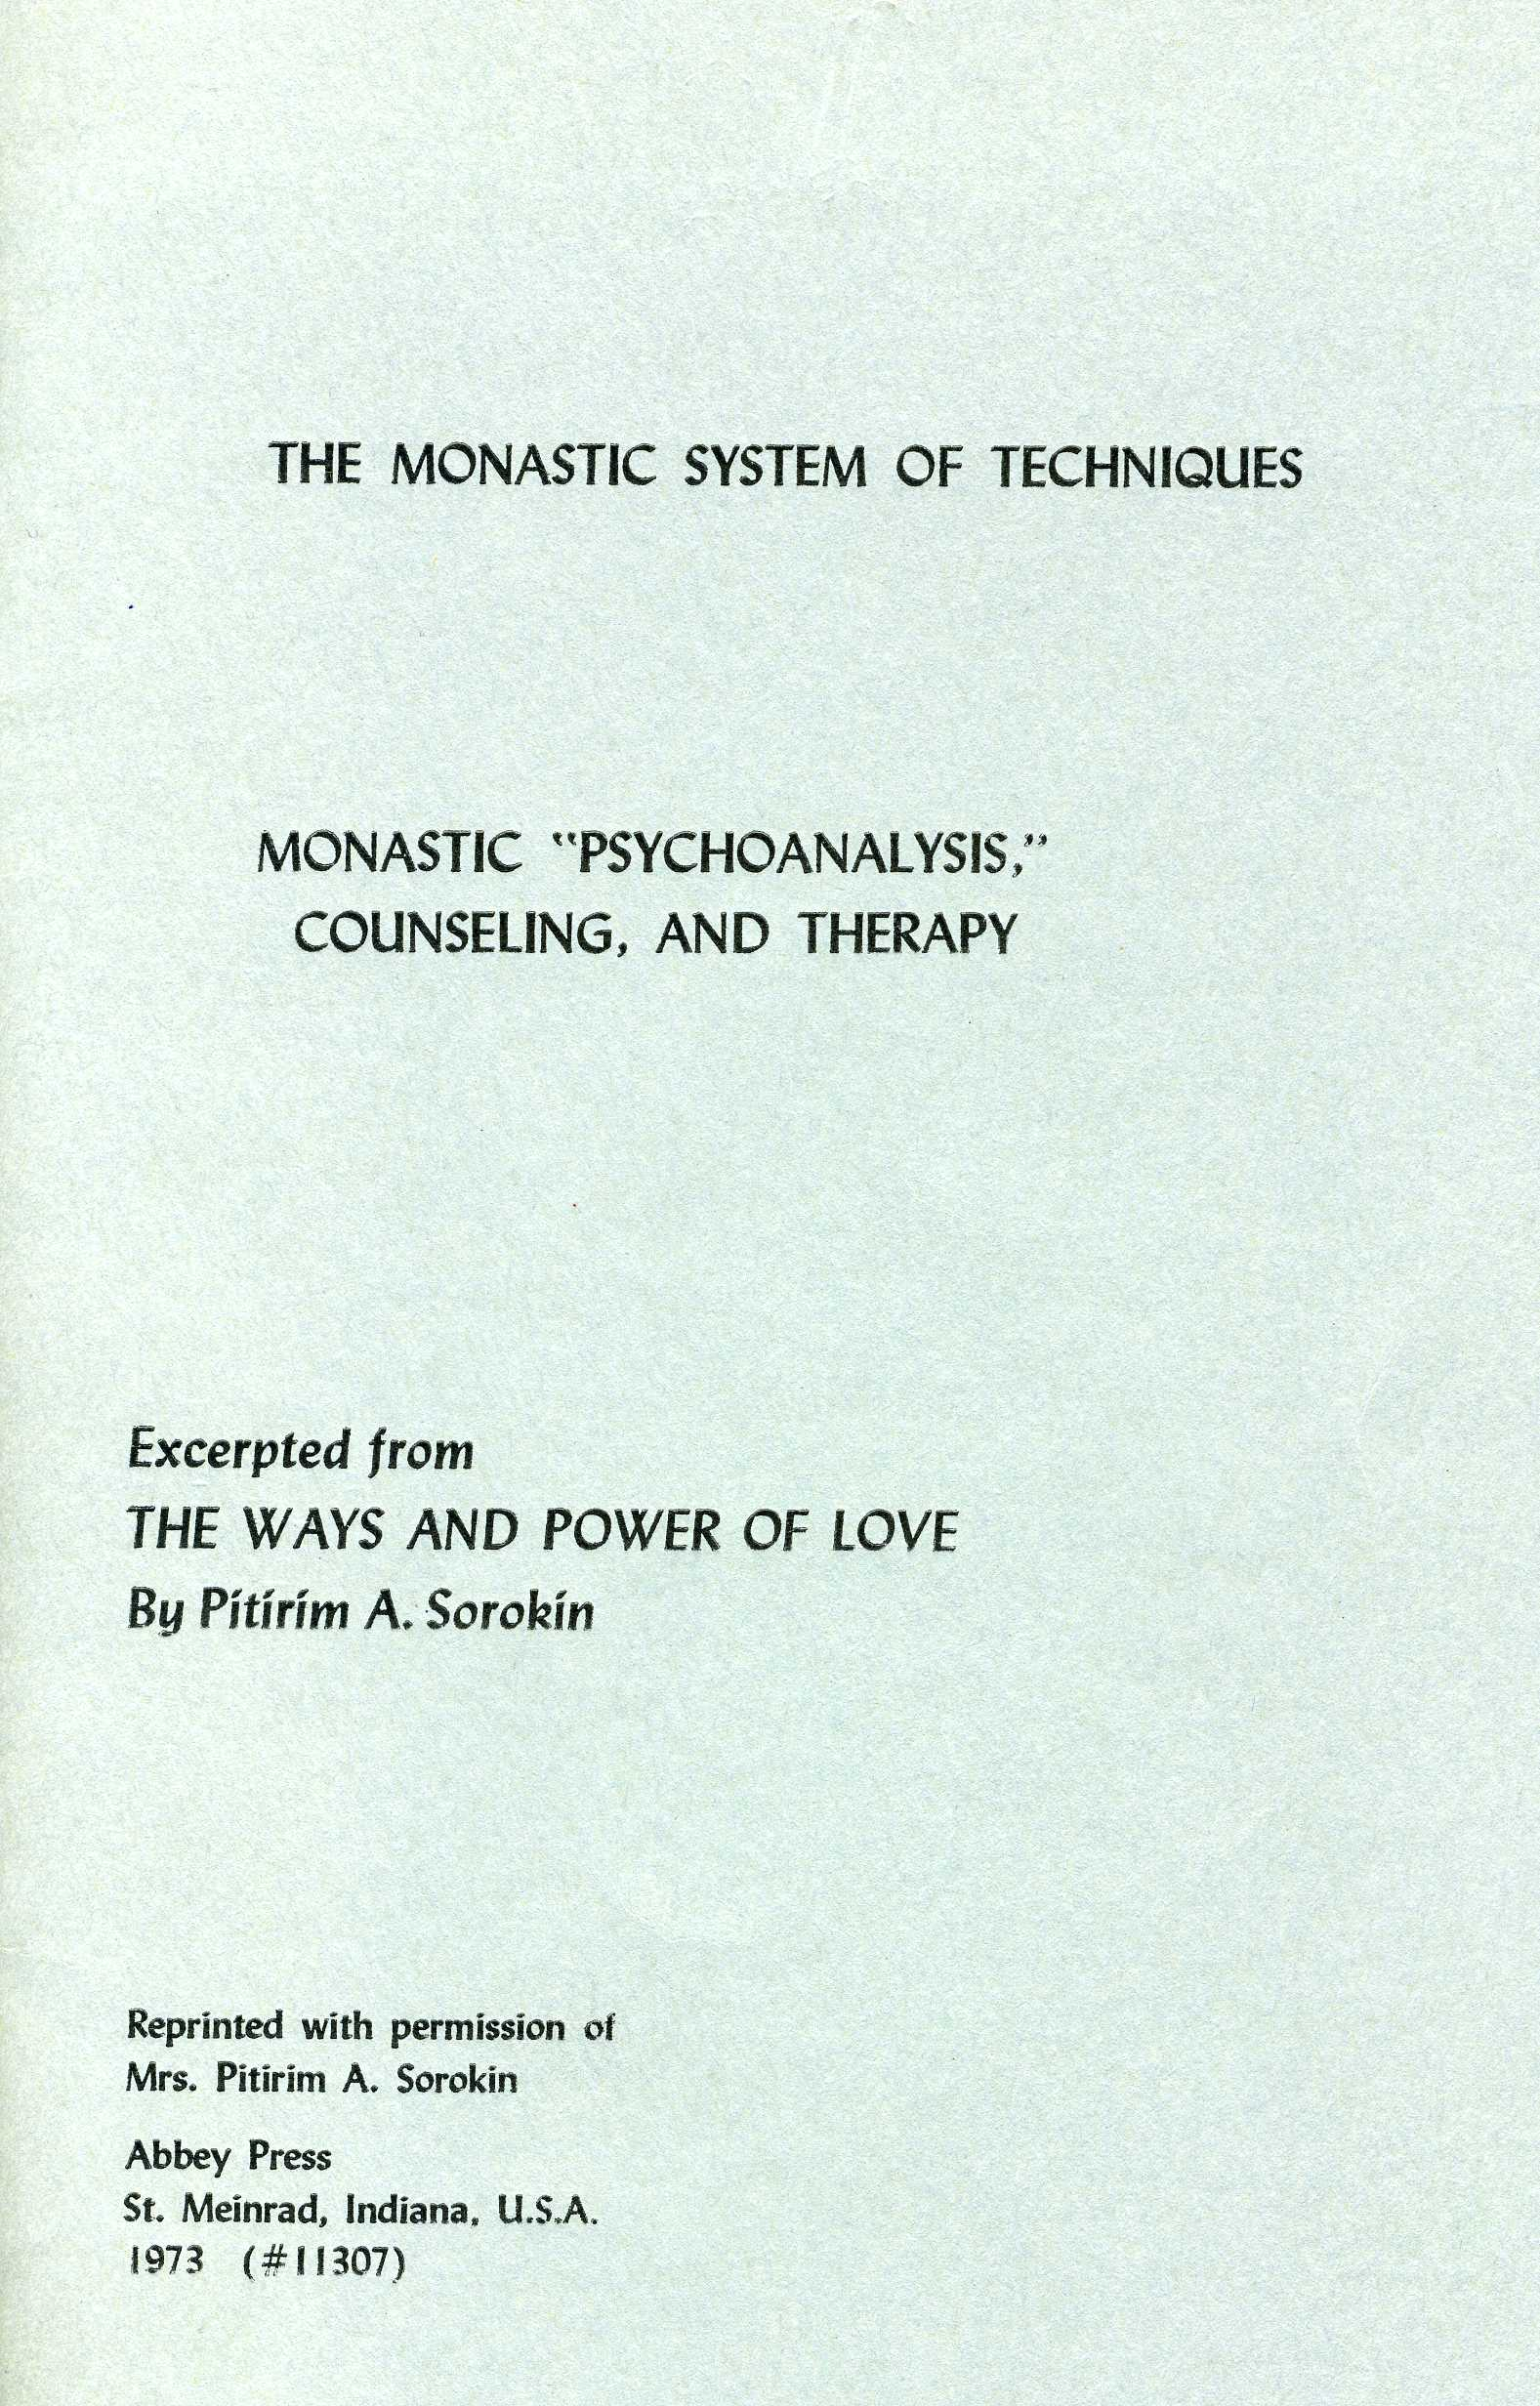 The Monastic System of Techniques071.jpg